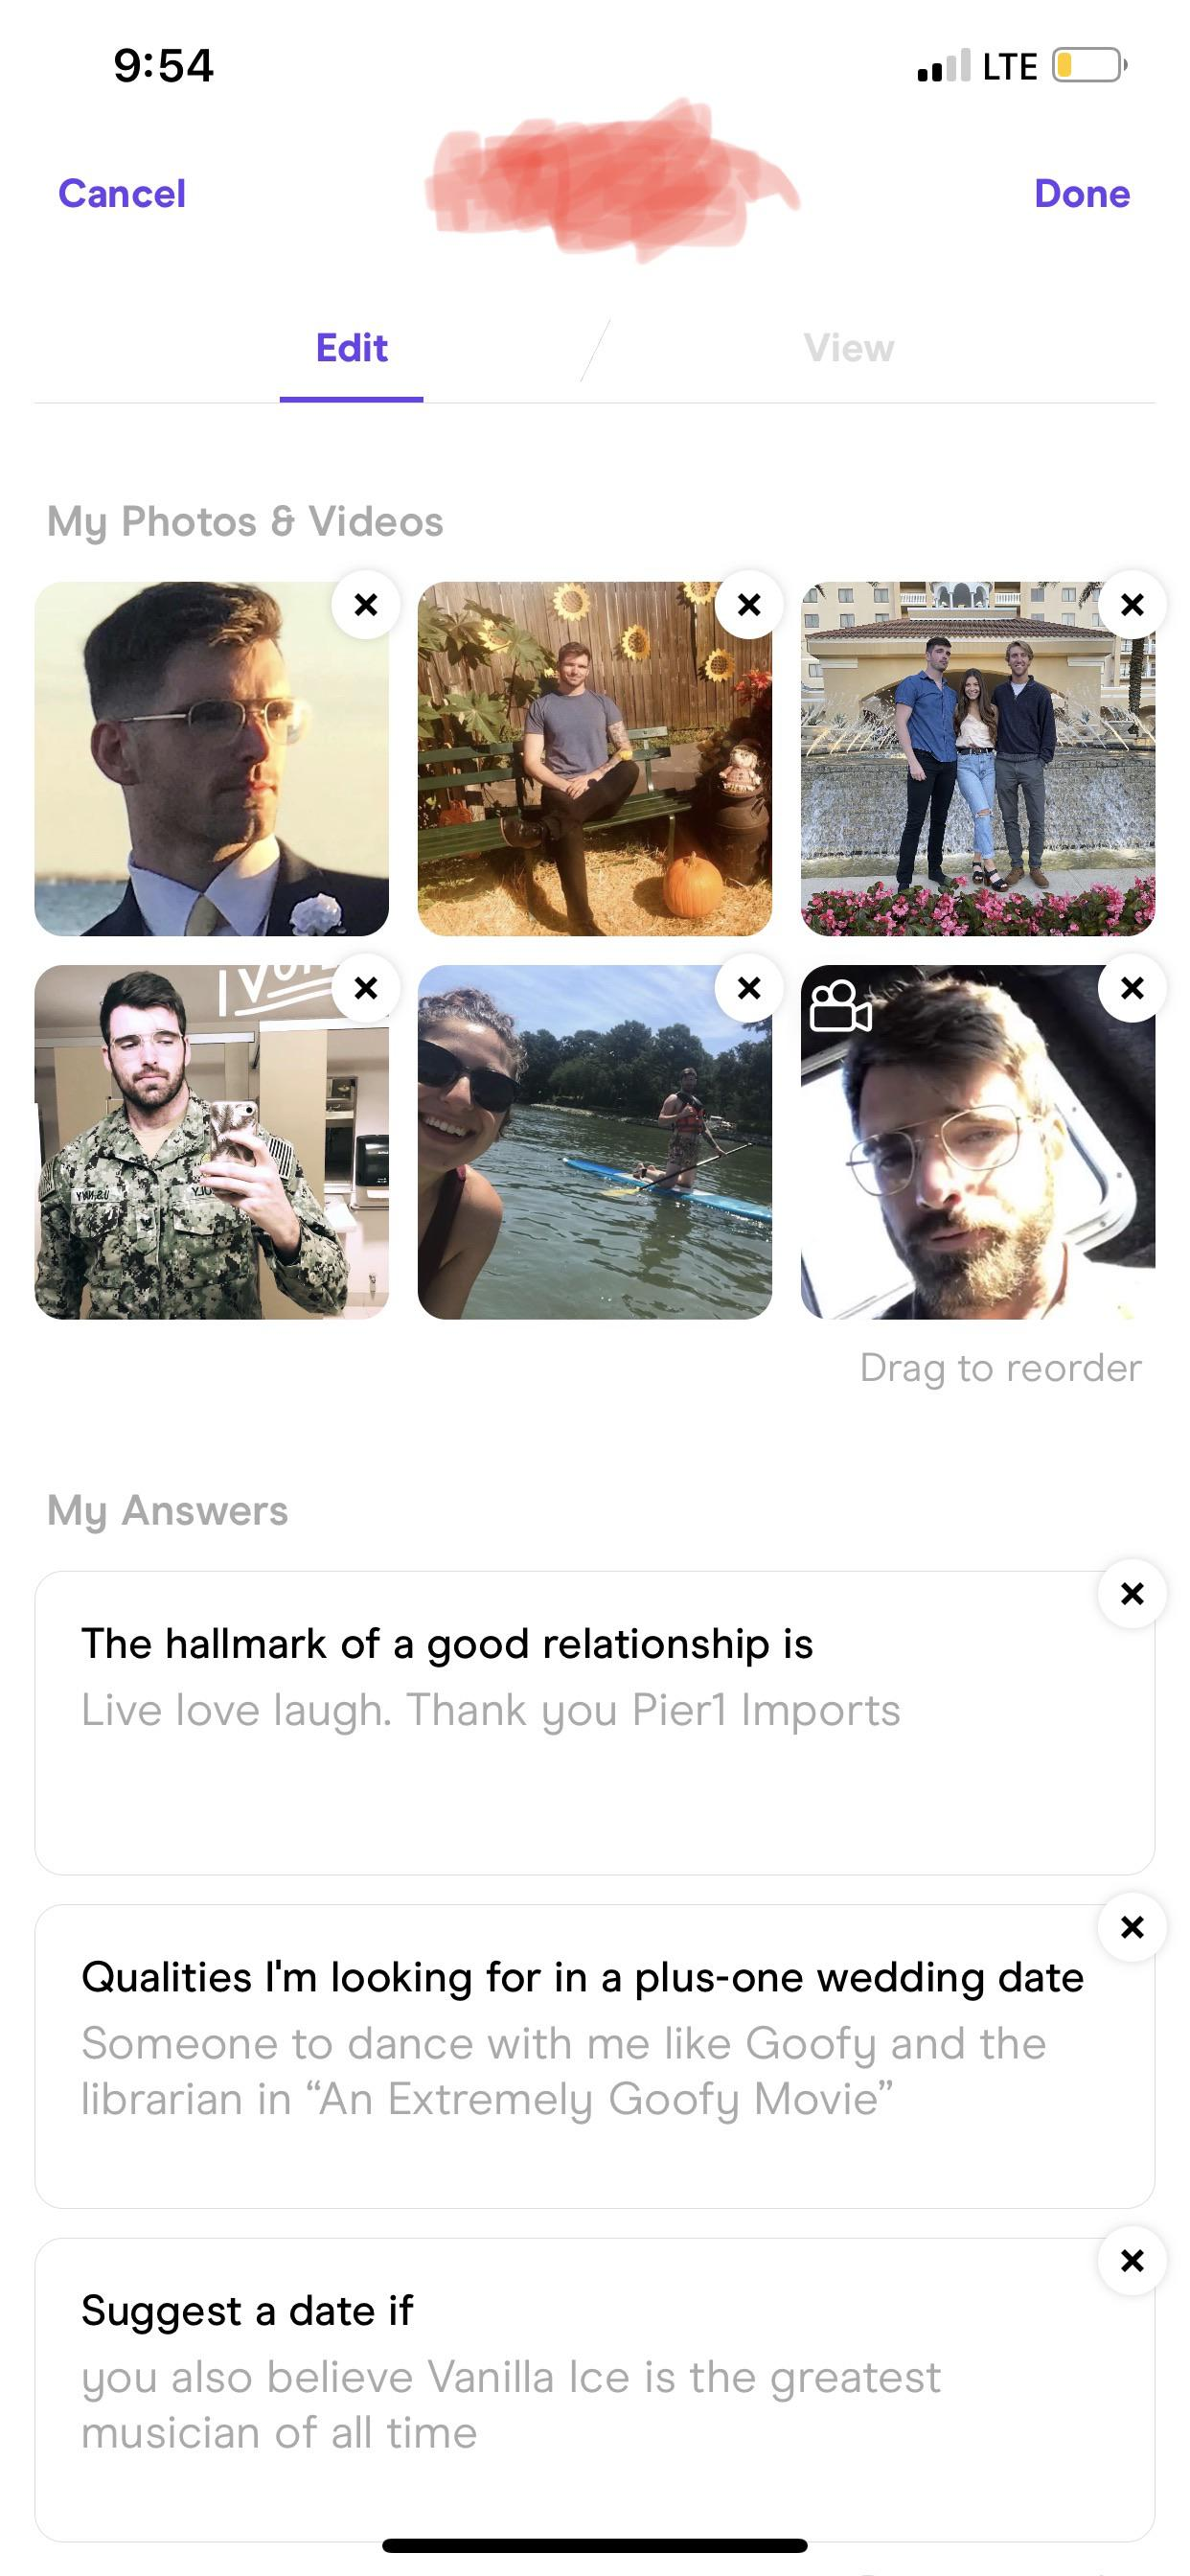 Funny Hinge Profiles : funny, hinge, profiles, Profile, Around, Getting, Zilch, Likes, Albeit, Matches, Great., Isn't, Funny, Older, Either, Hingeapp